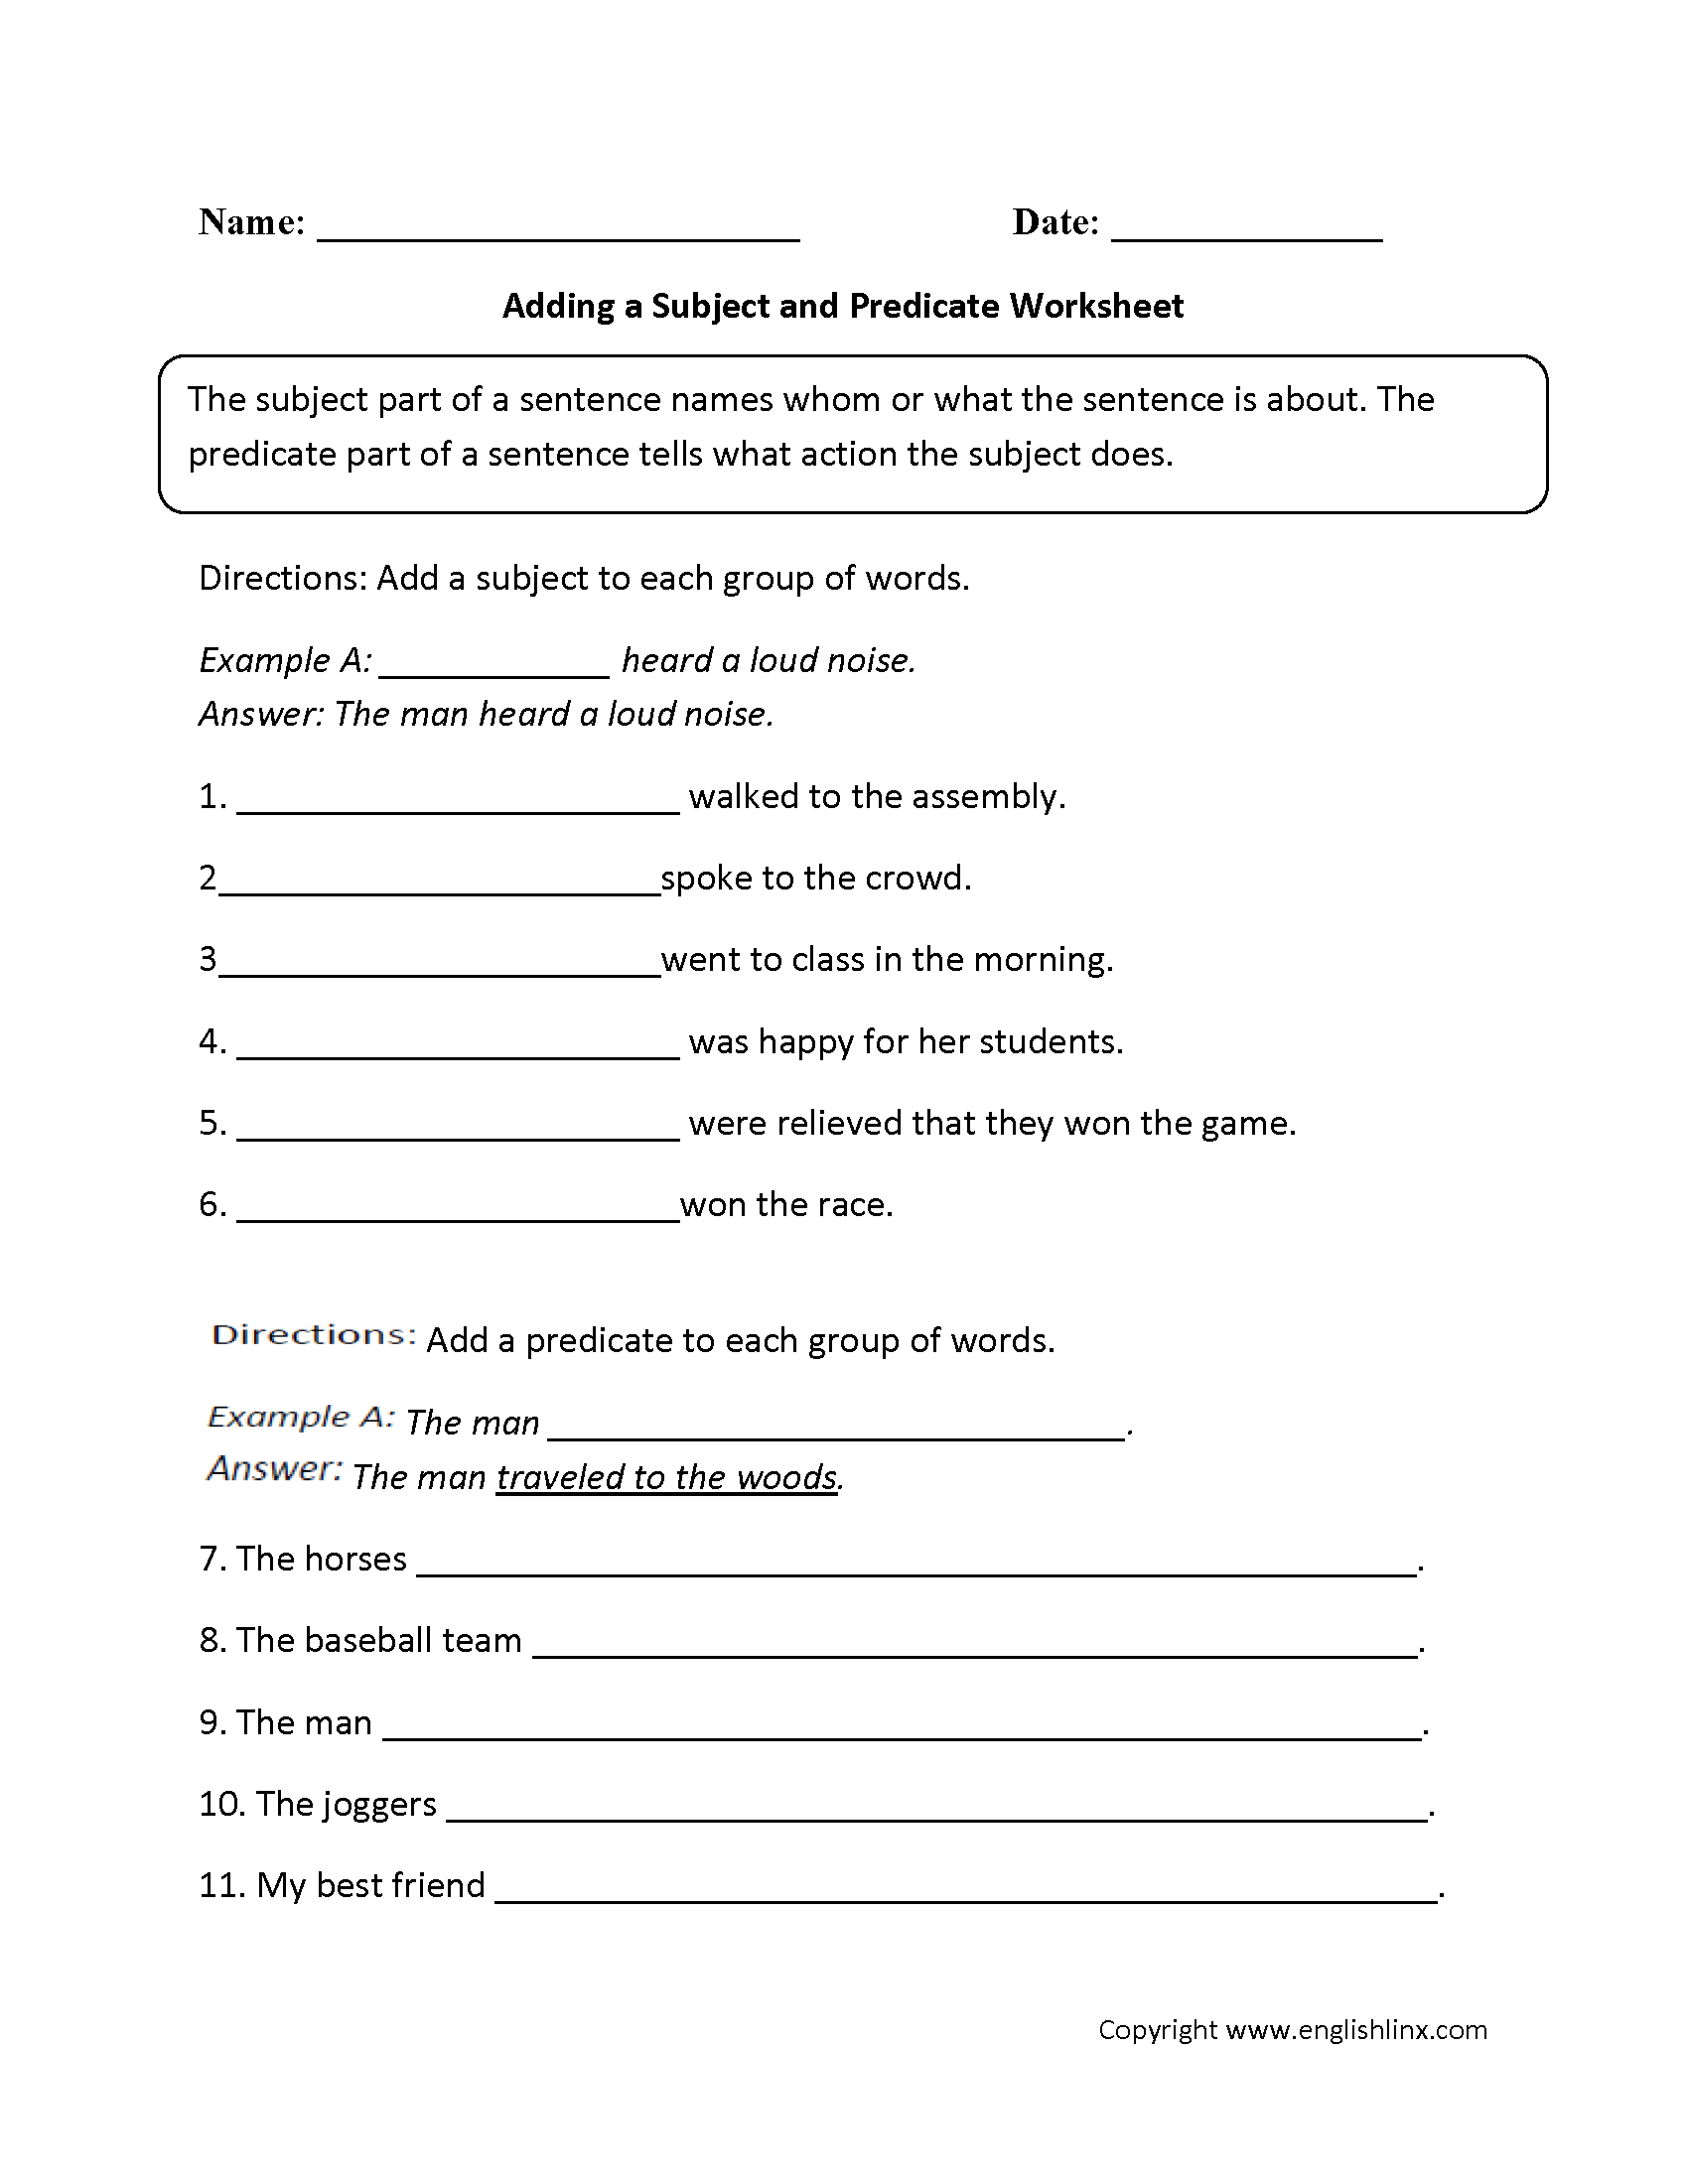 worksheet 8th Grade Vocabulary Worksheets worksheet 6th grade language arts worksheets with answers thedanks adding a subject and predicate englishlinx com